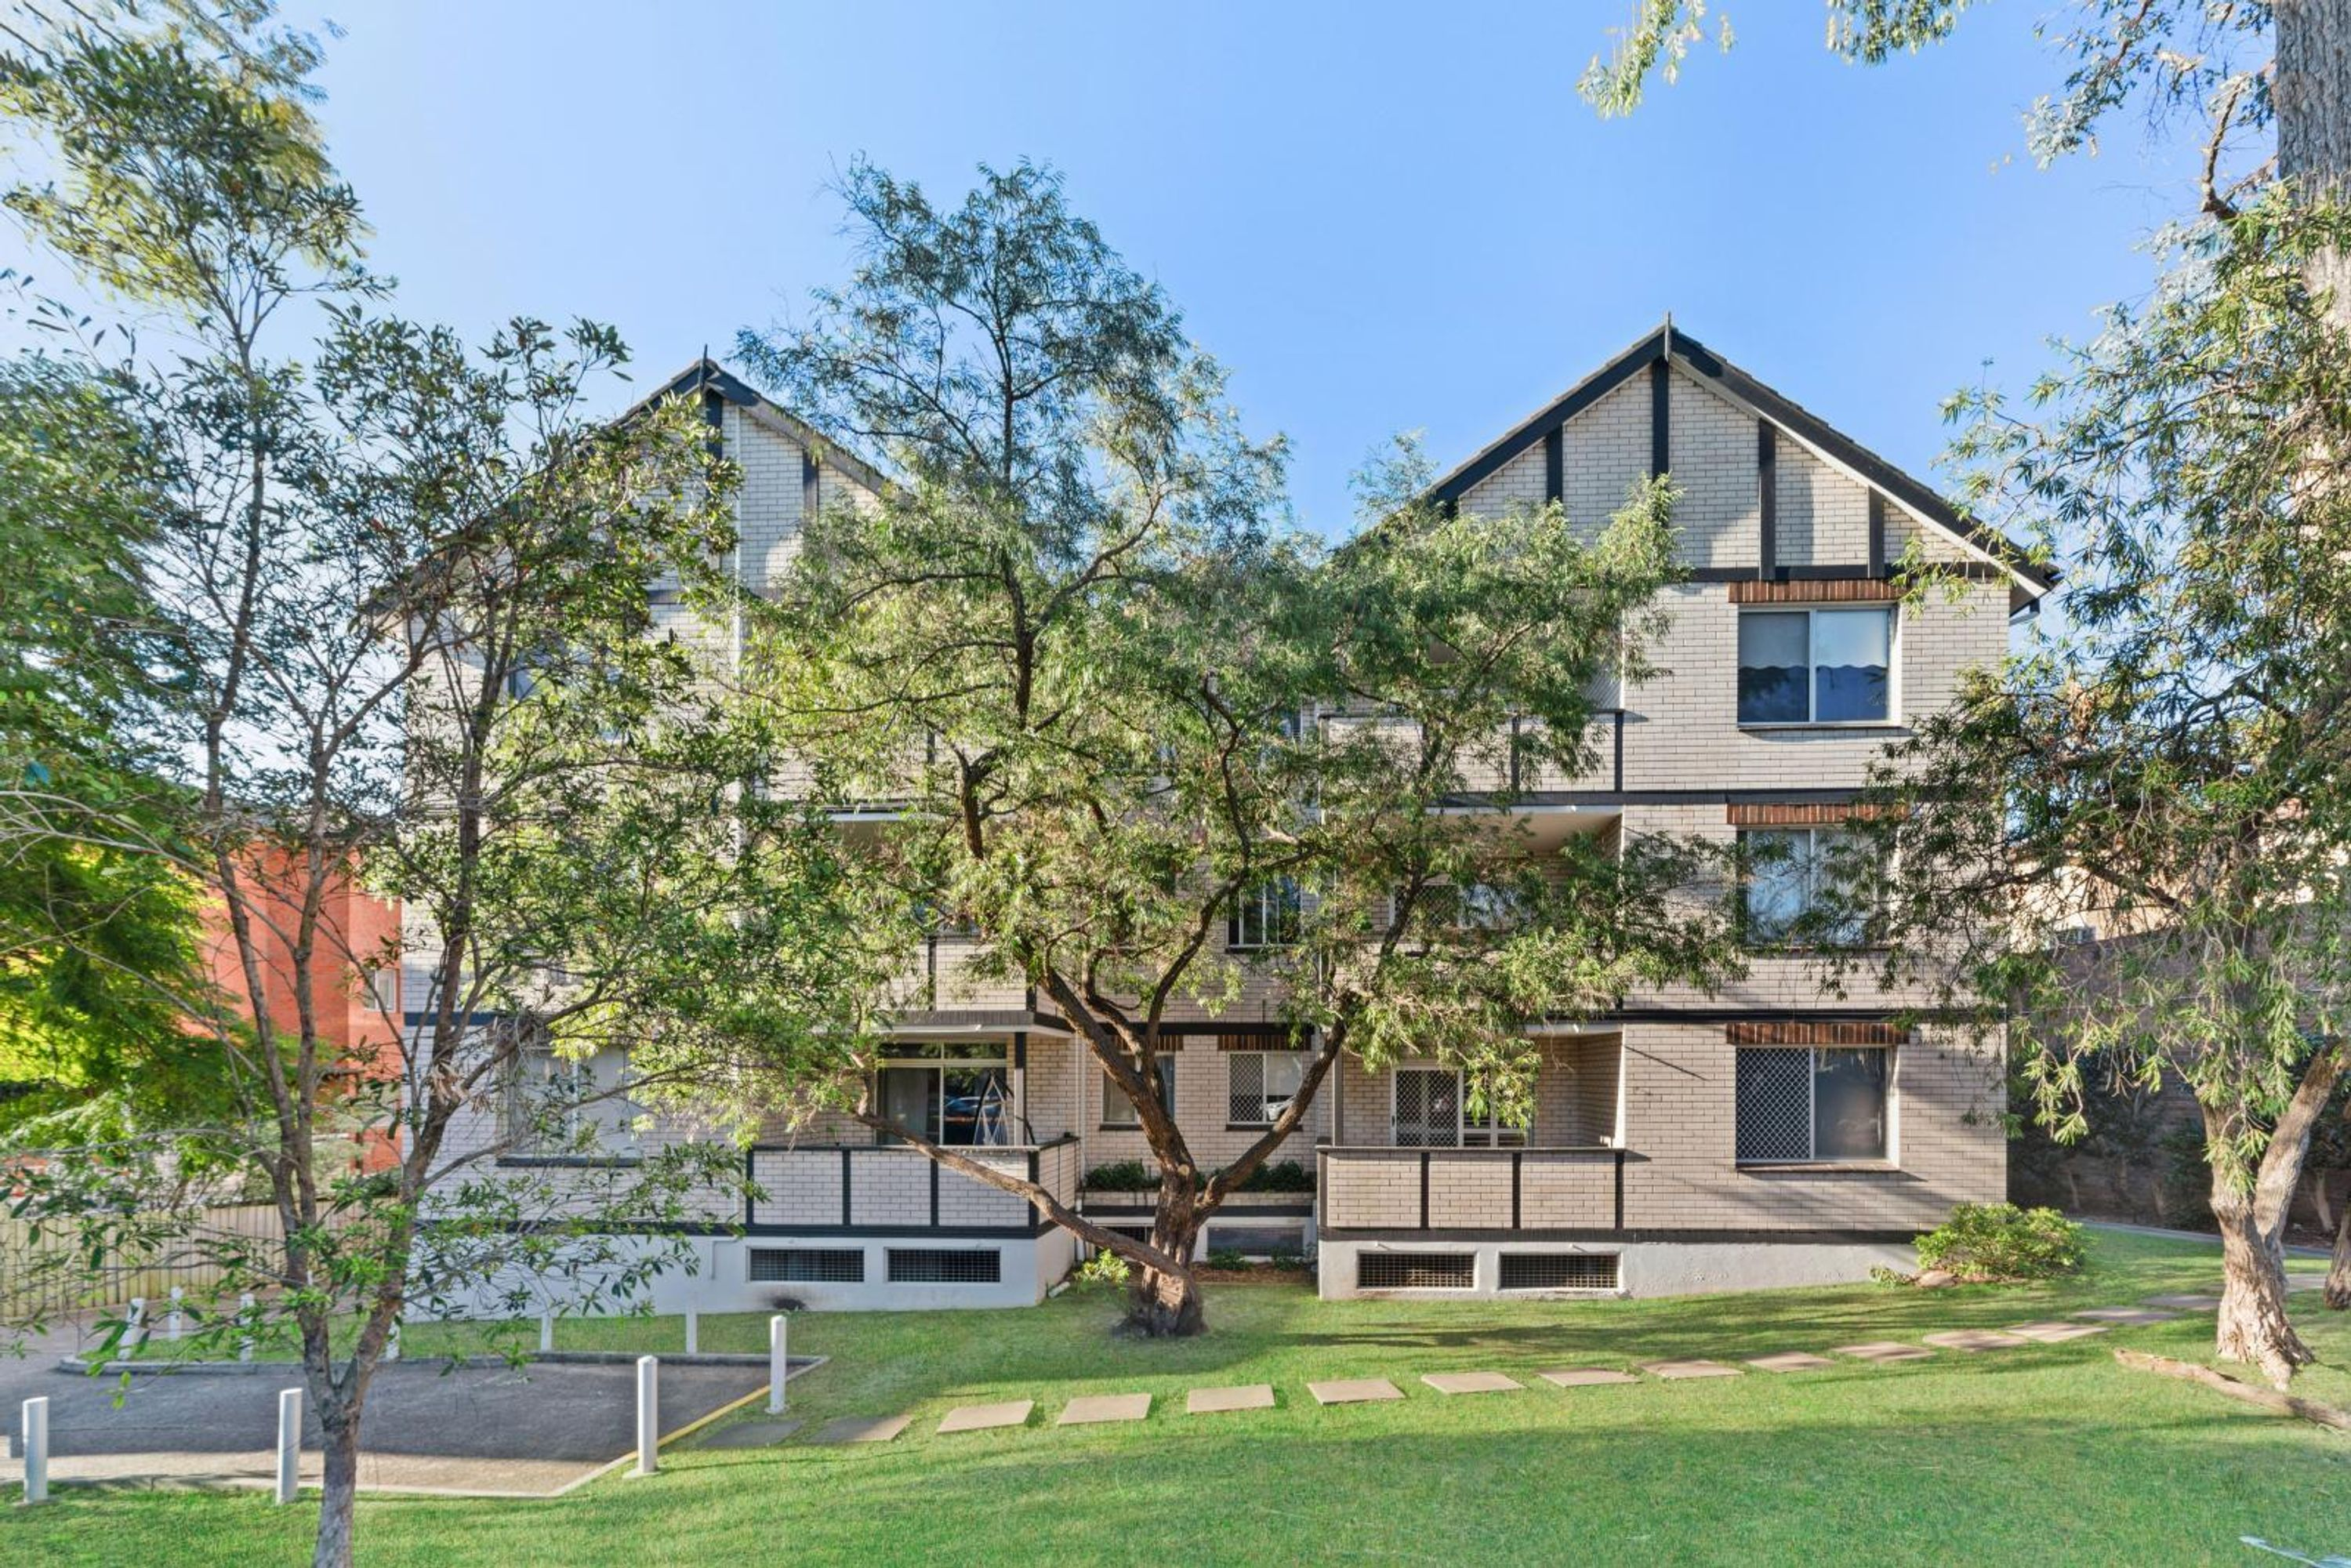 13/529 Victoria Road, Ryde, NSW 2112